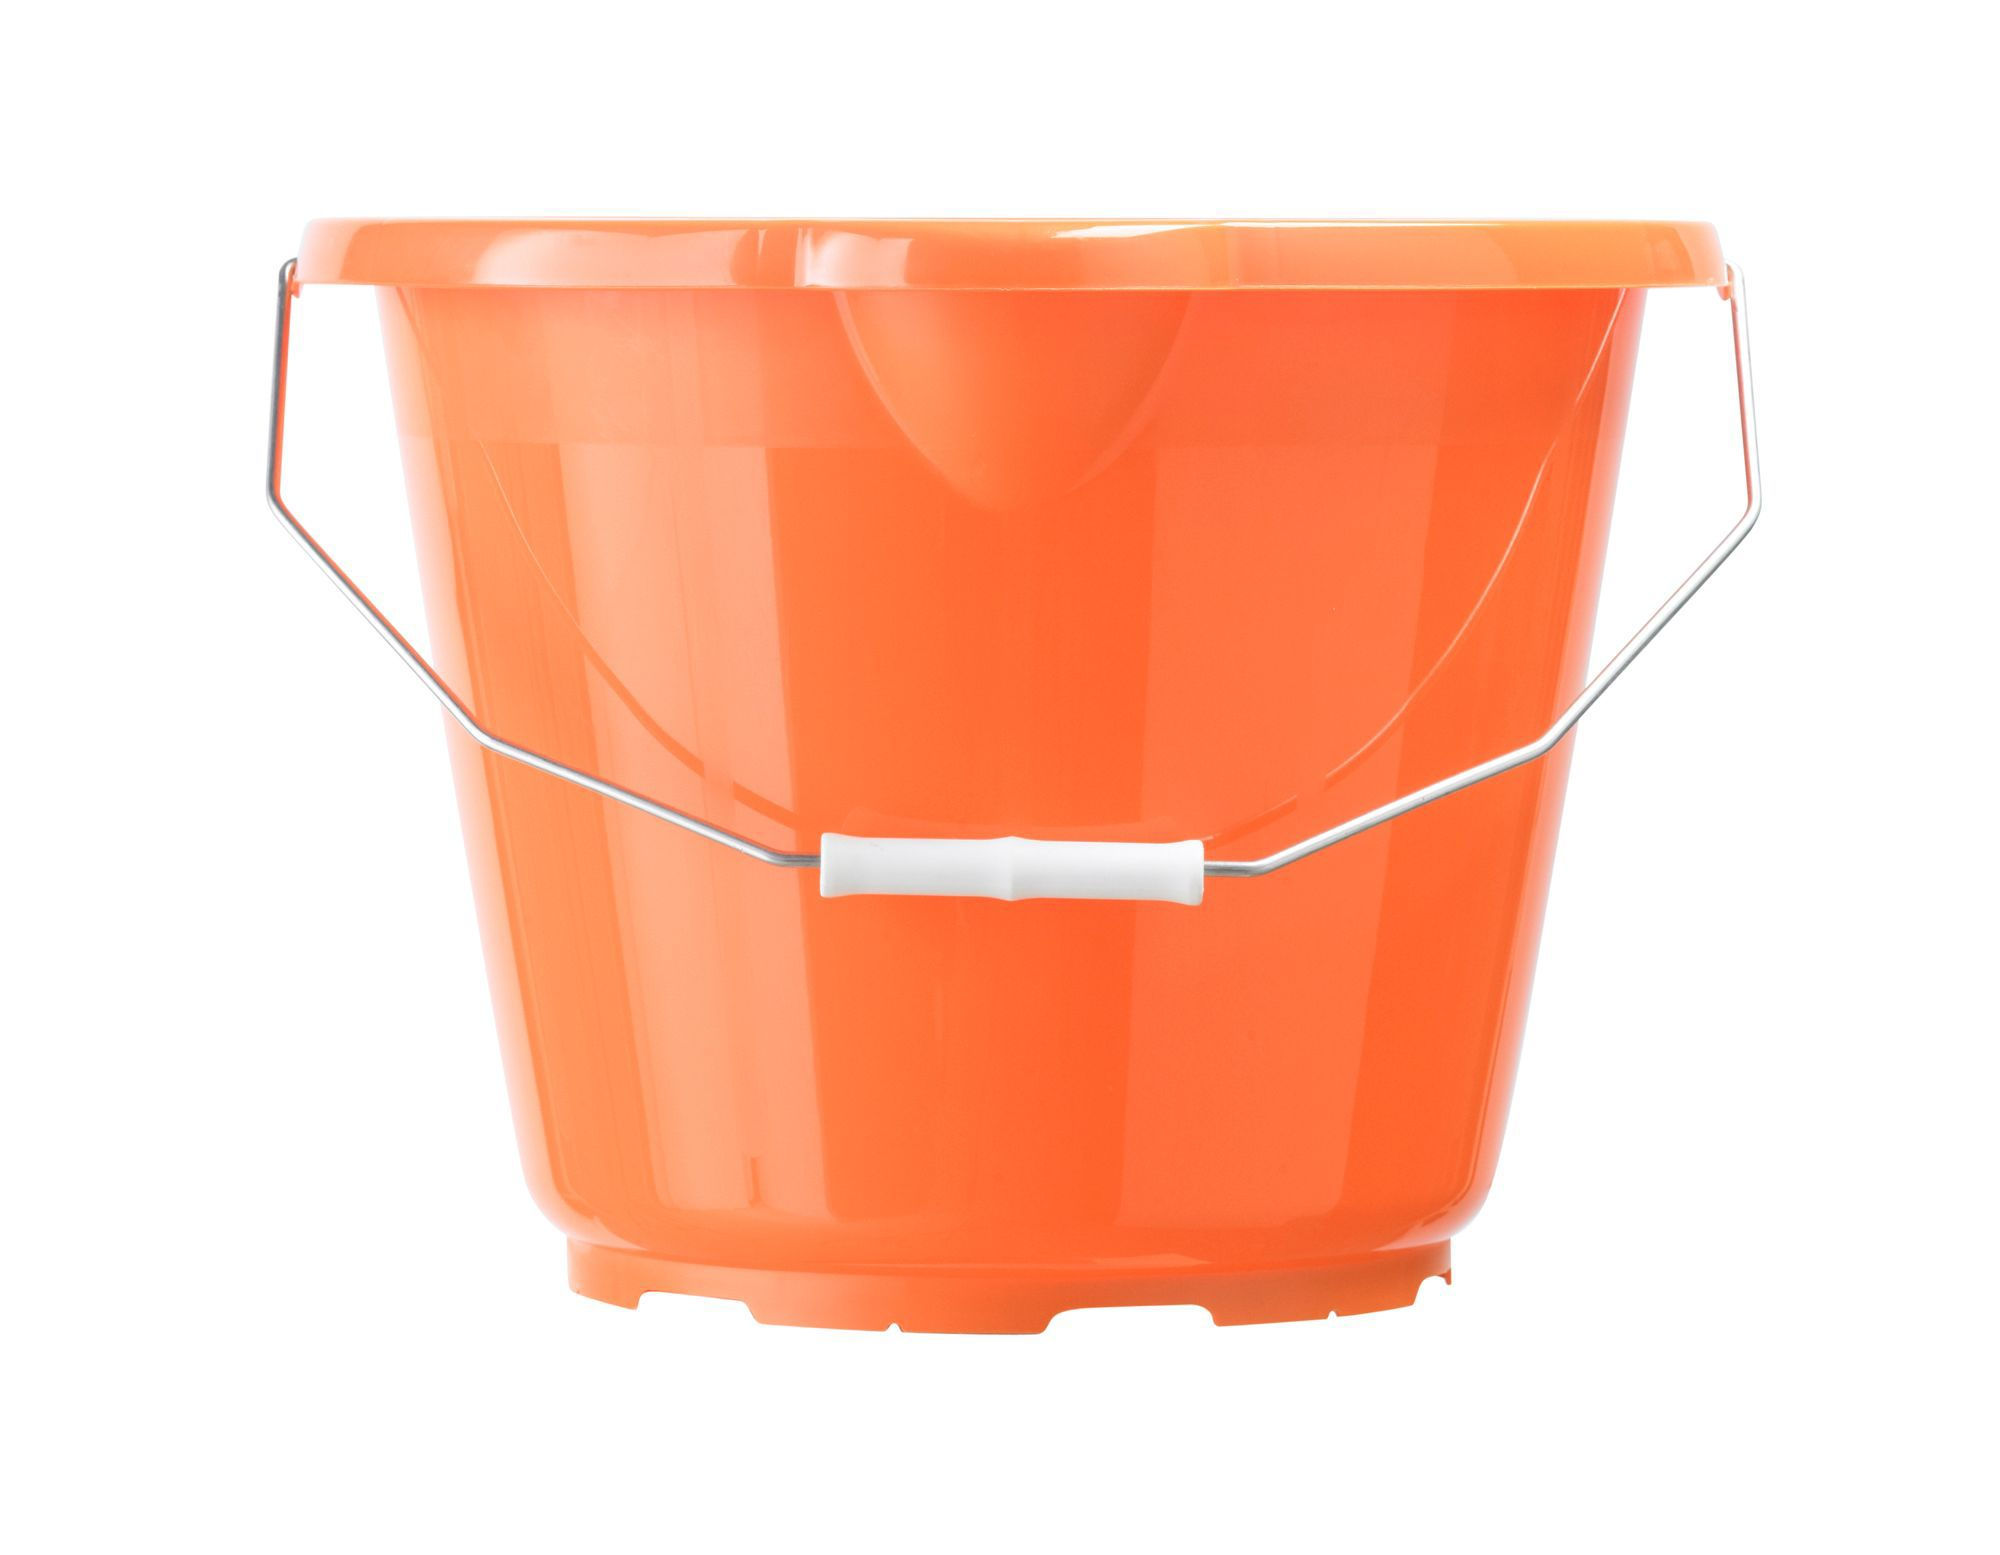 how to cut plastic bucket